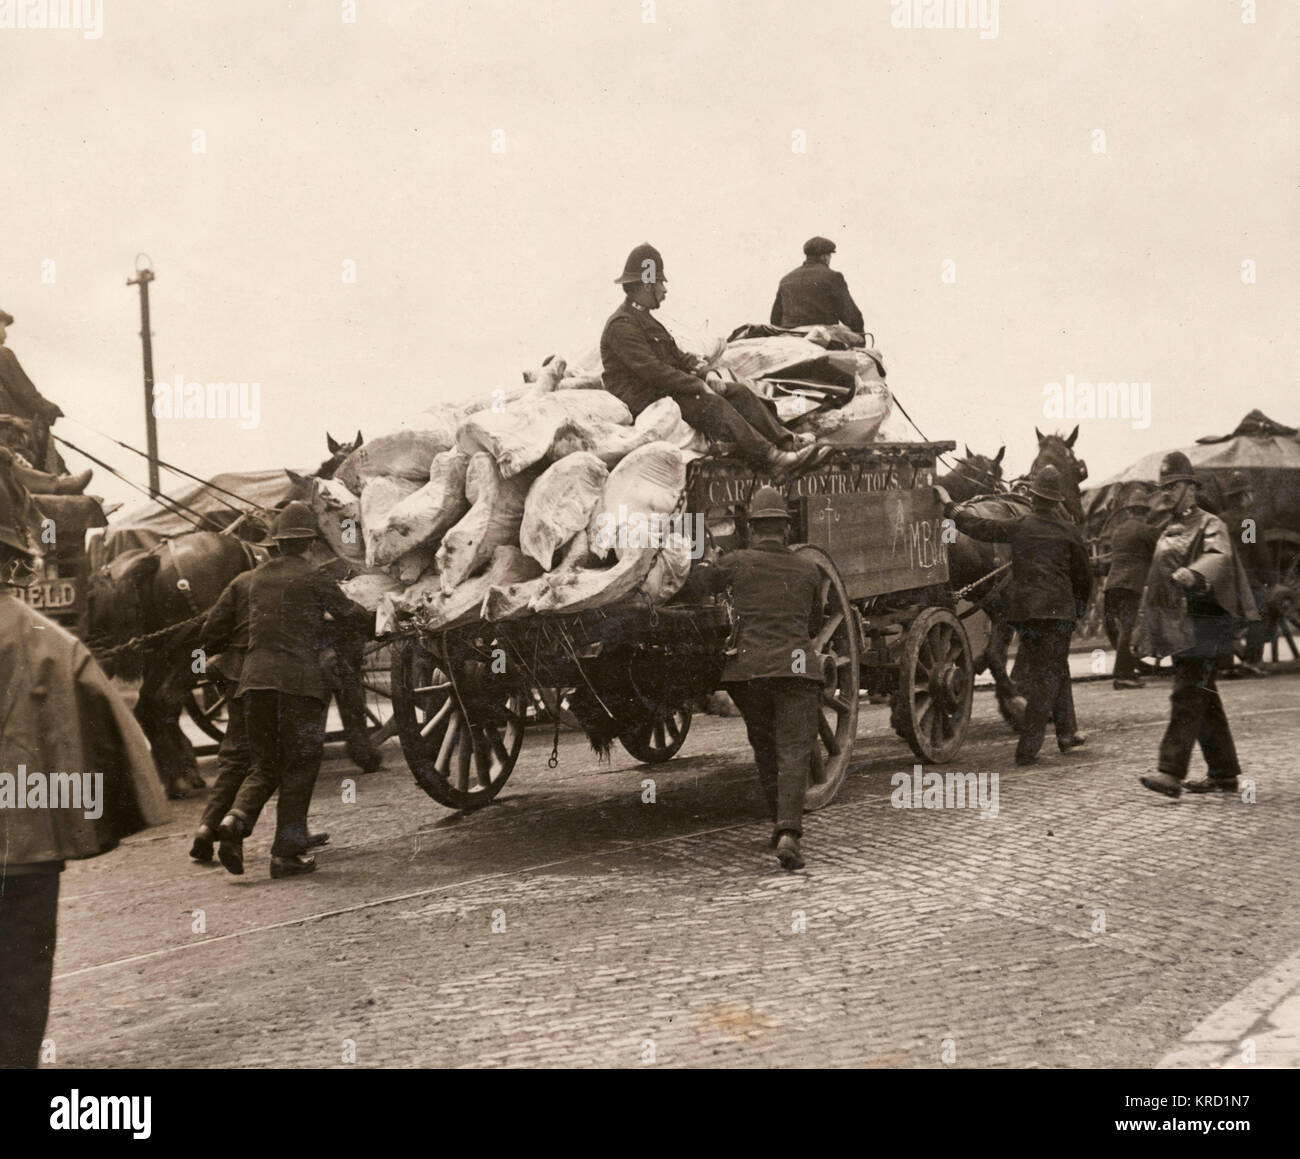 Policemen accompany a cart carrying goods across the bridge at Canning Town, near the London Docks in East London, - Stock Image